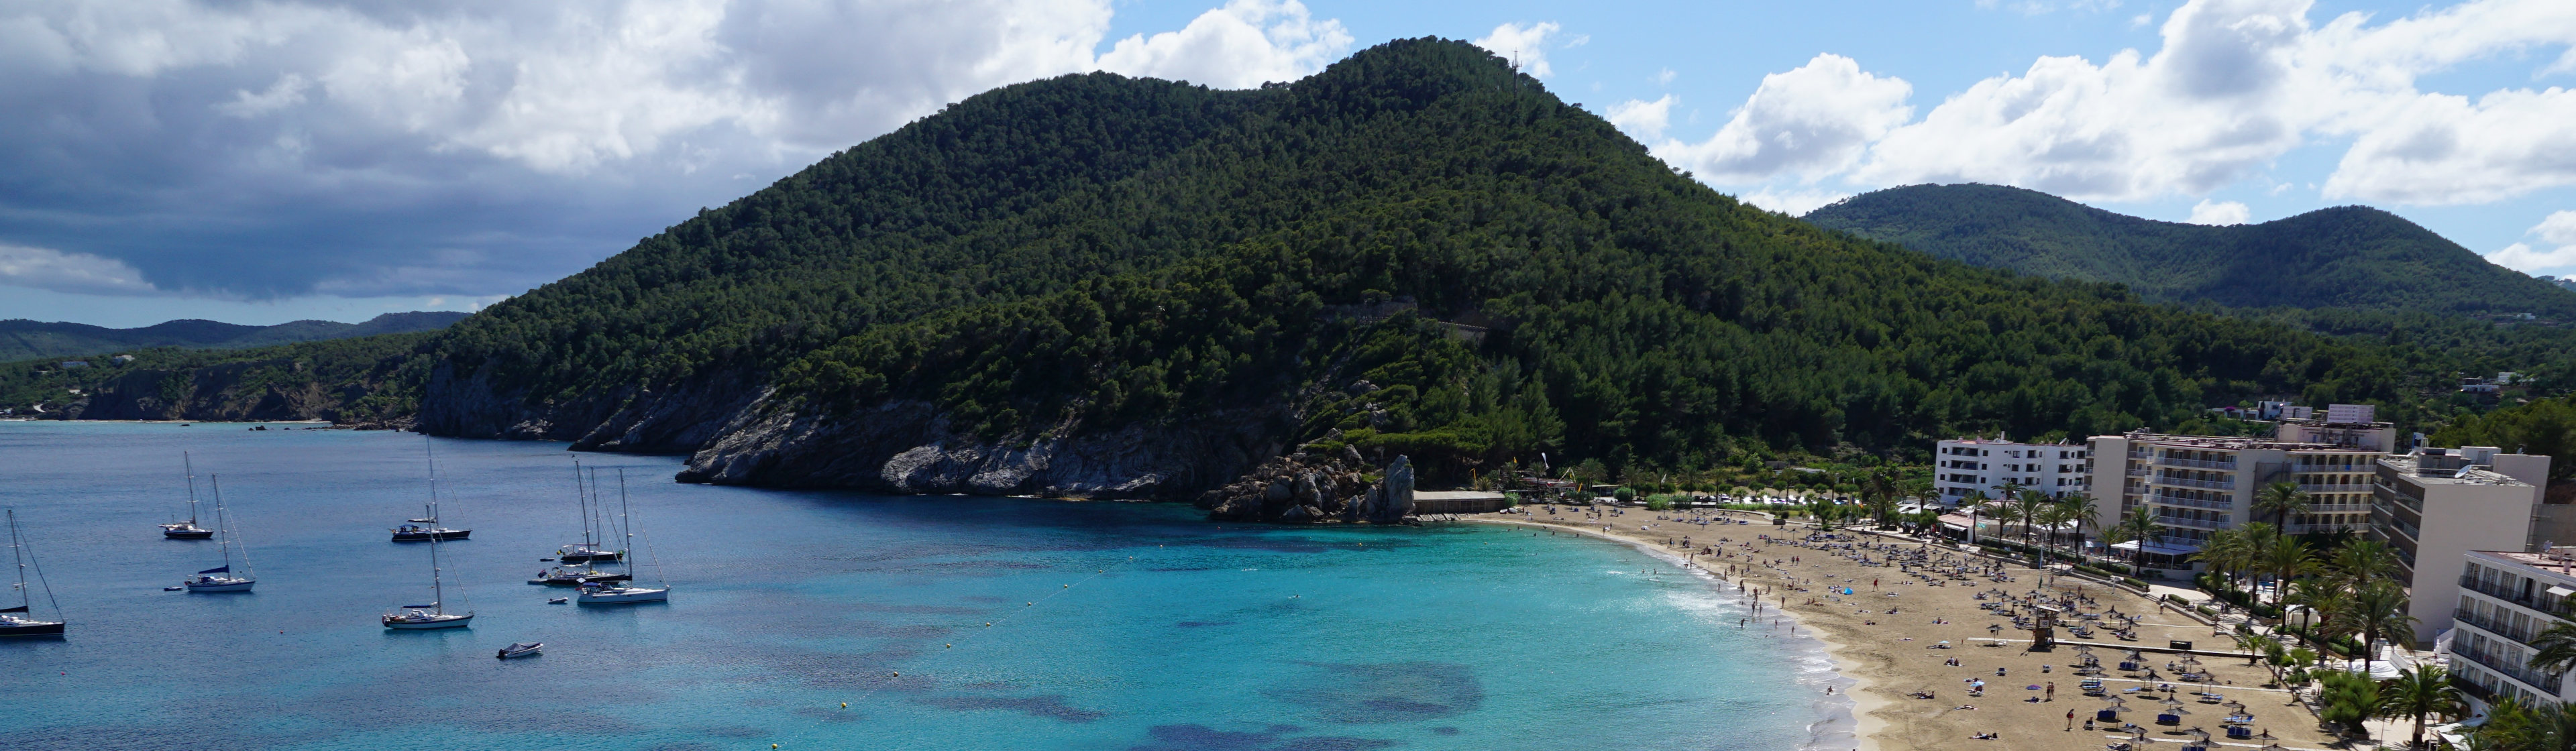 Travel Bucketlist: Ibiza